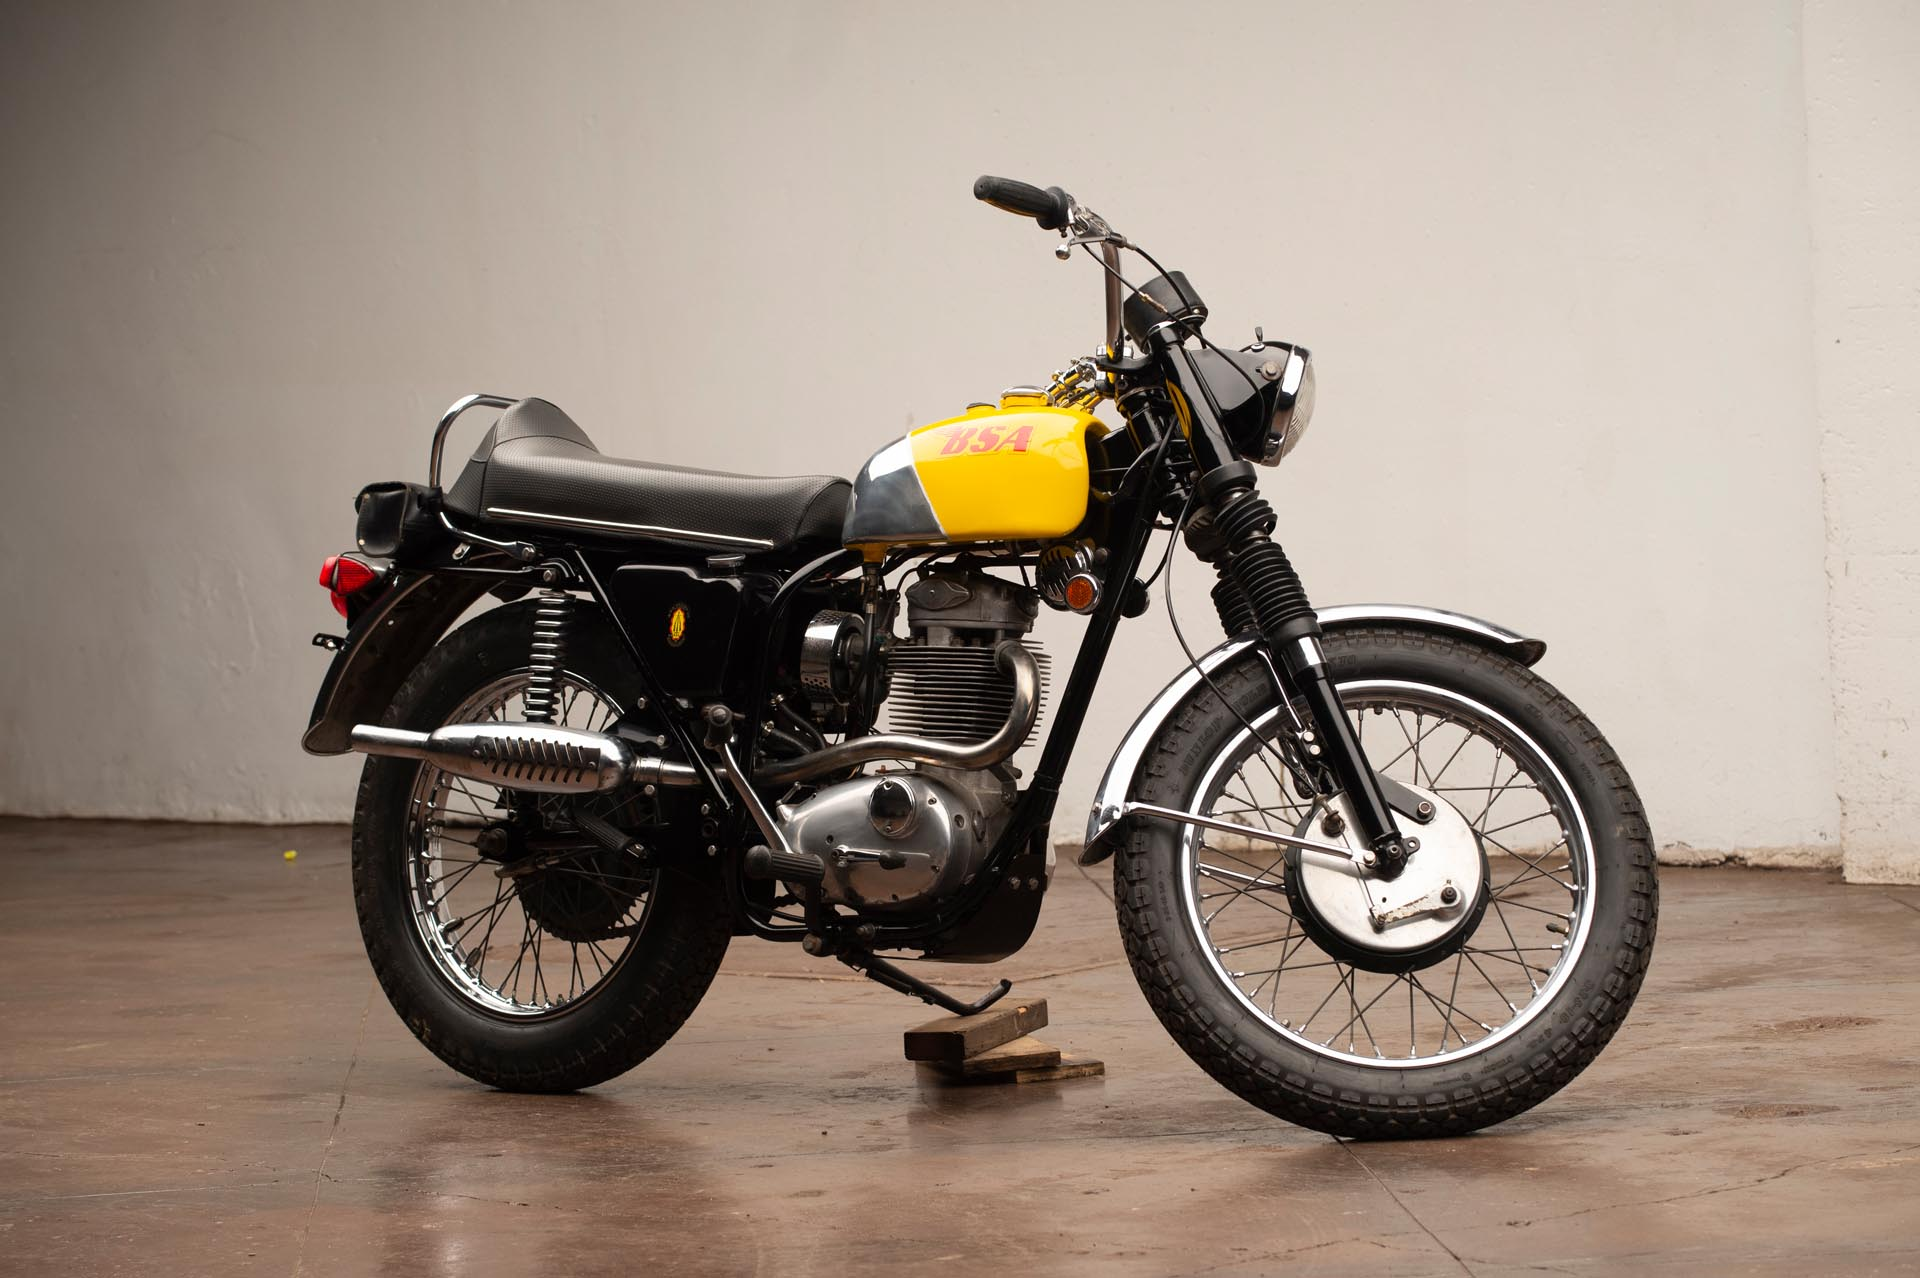 1970 BSA Victor 441 Special Motorcycle